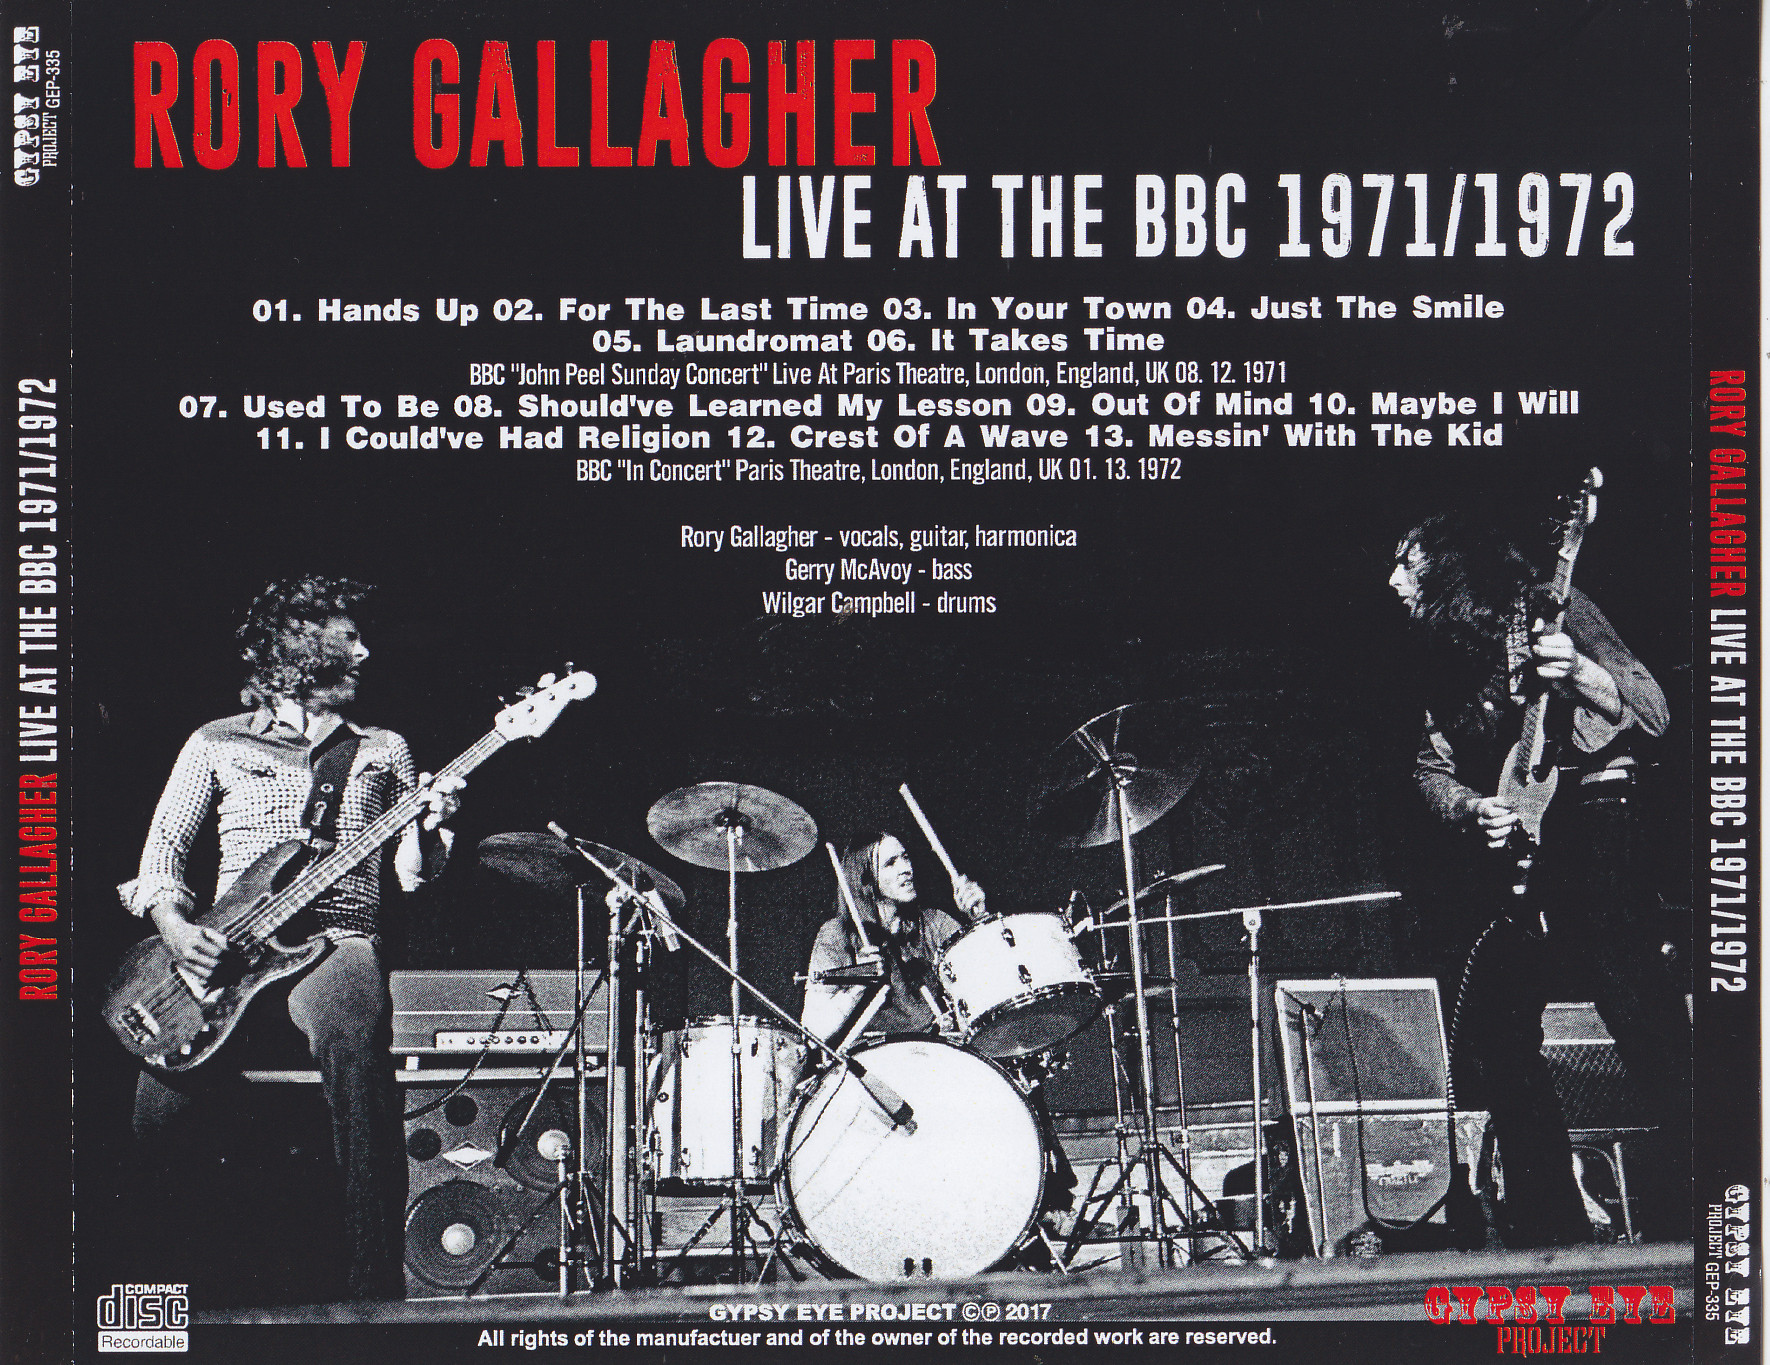 Rory Gallagher Live At The Bbc 1971 1972 1cdr Giginjapan